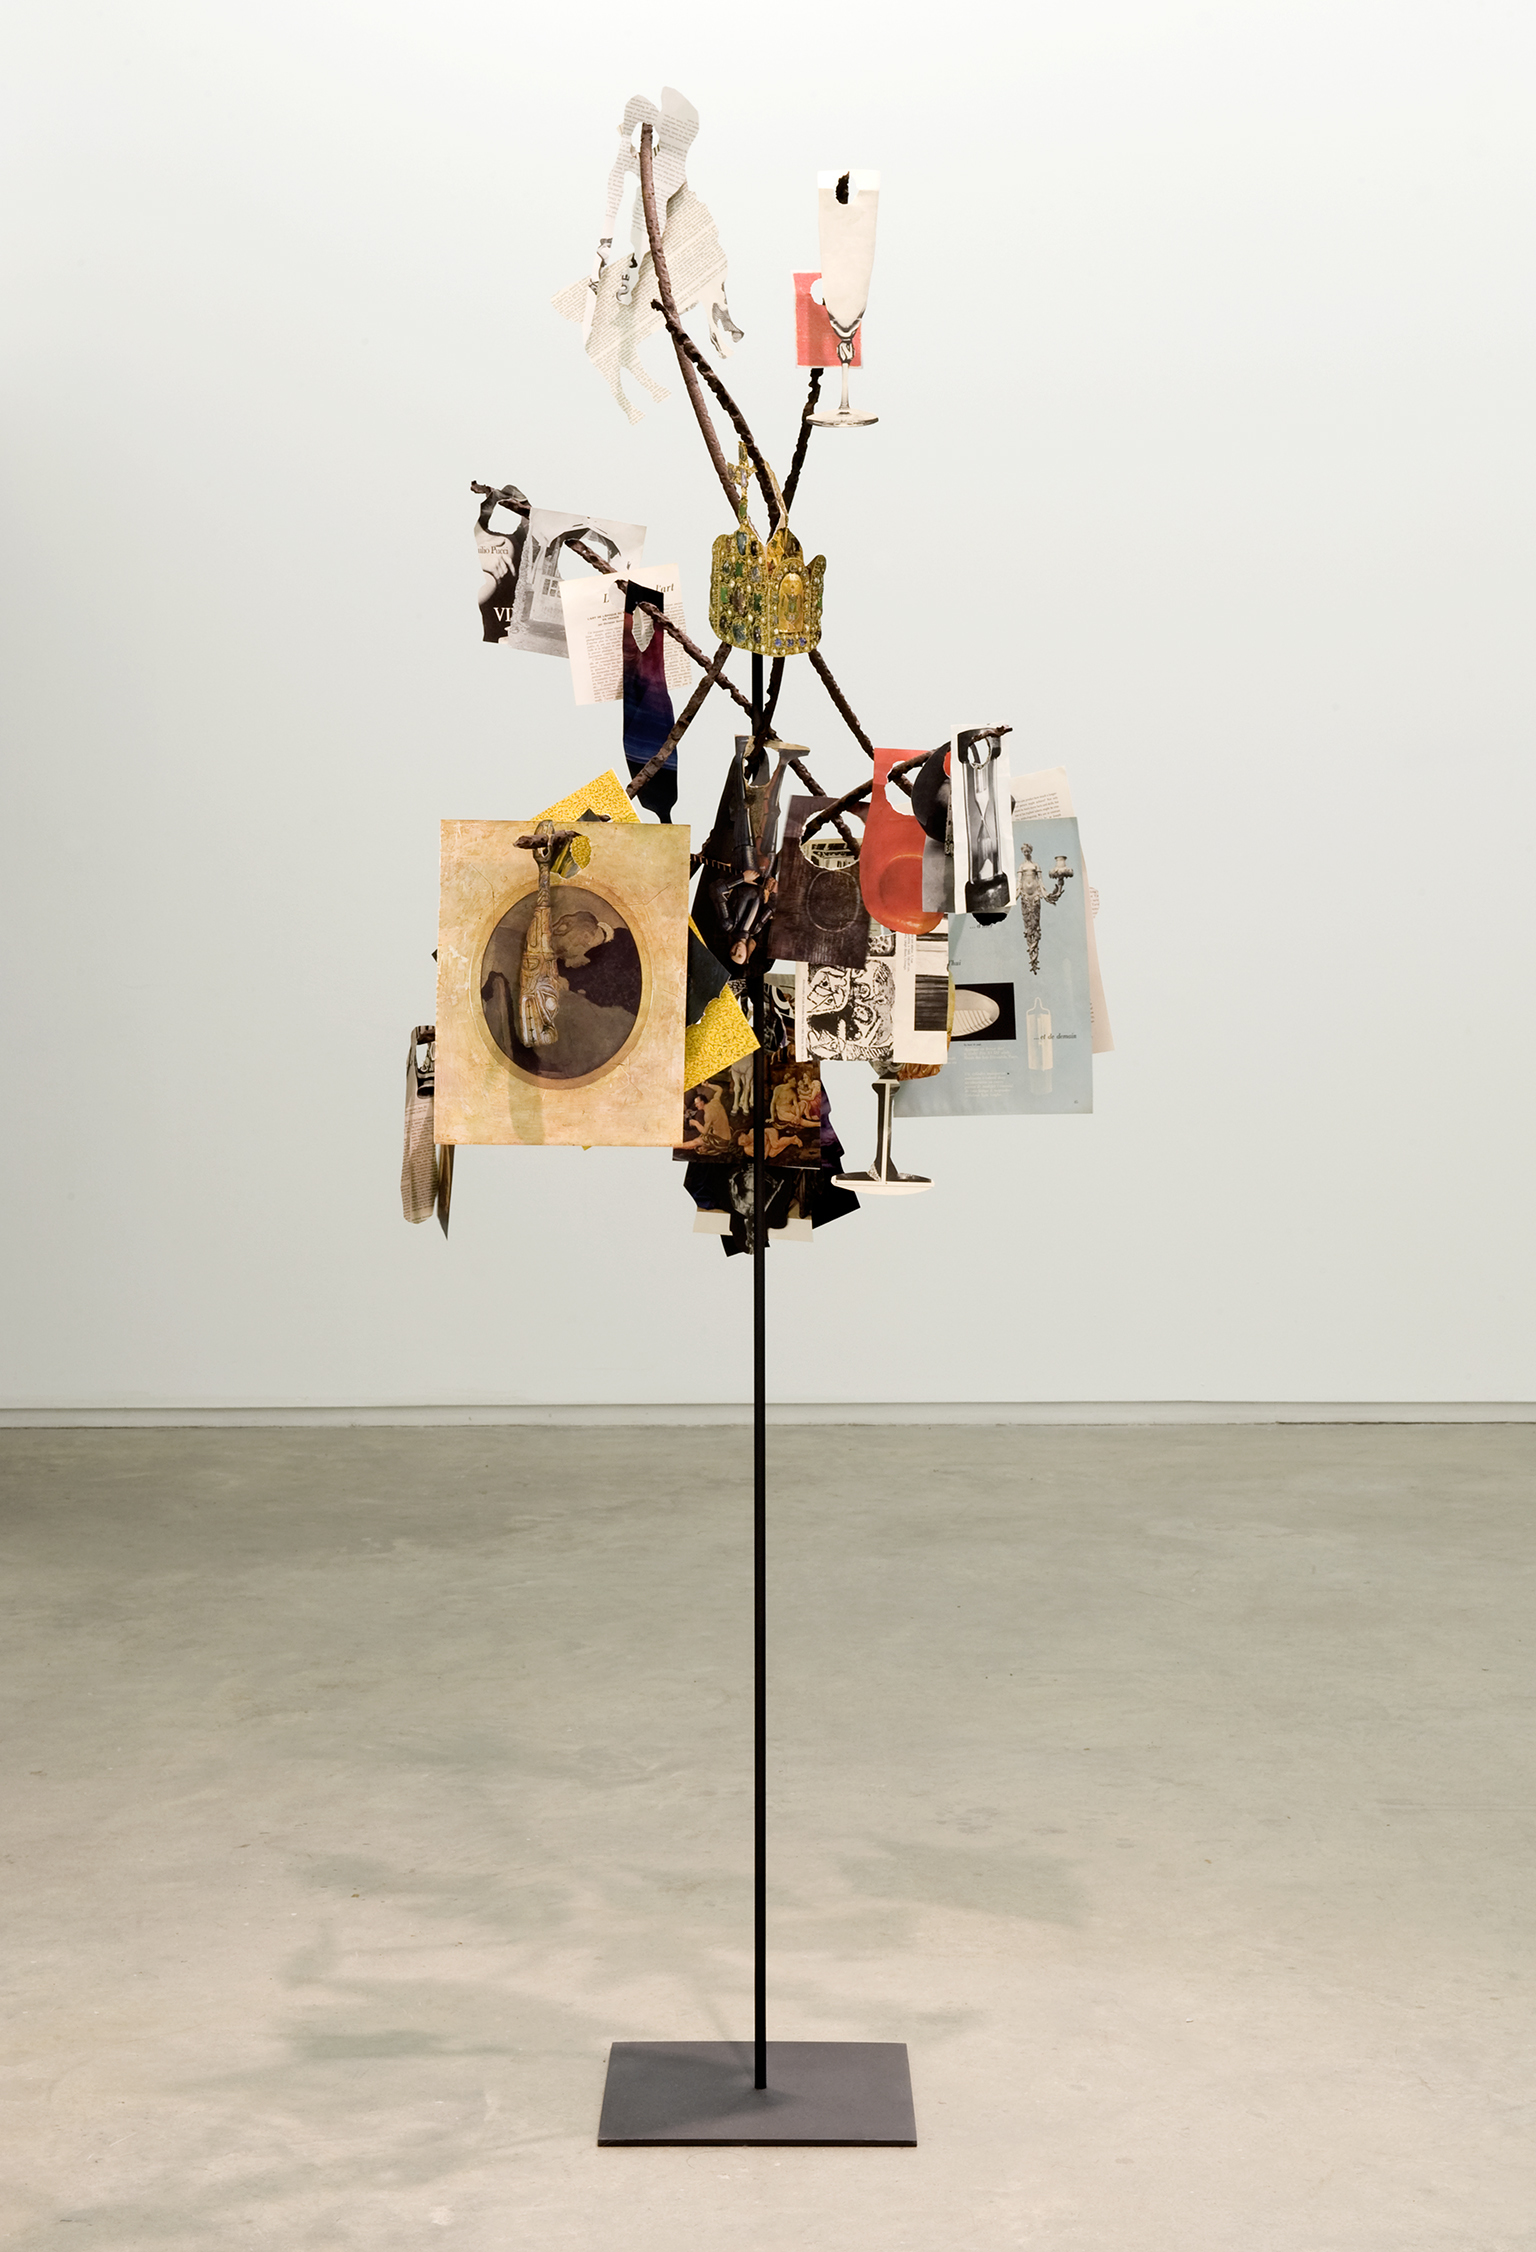 Geoffrey Farmer, Metal Will Stand Tall (A Single Image Is Not A Splendor), 2011, found metal, book cut outs, metal box, musical instruments, dimensions variable by